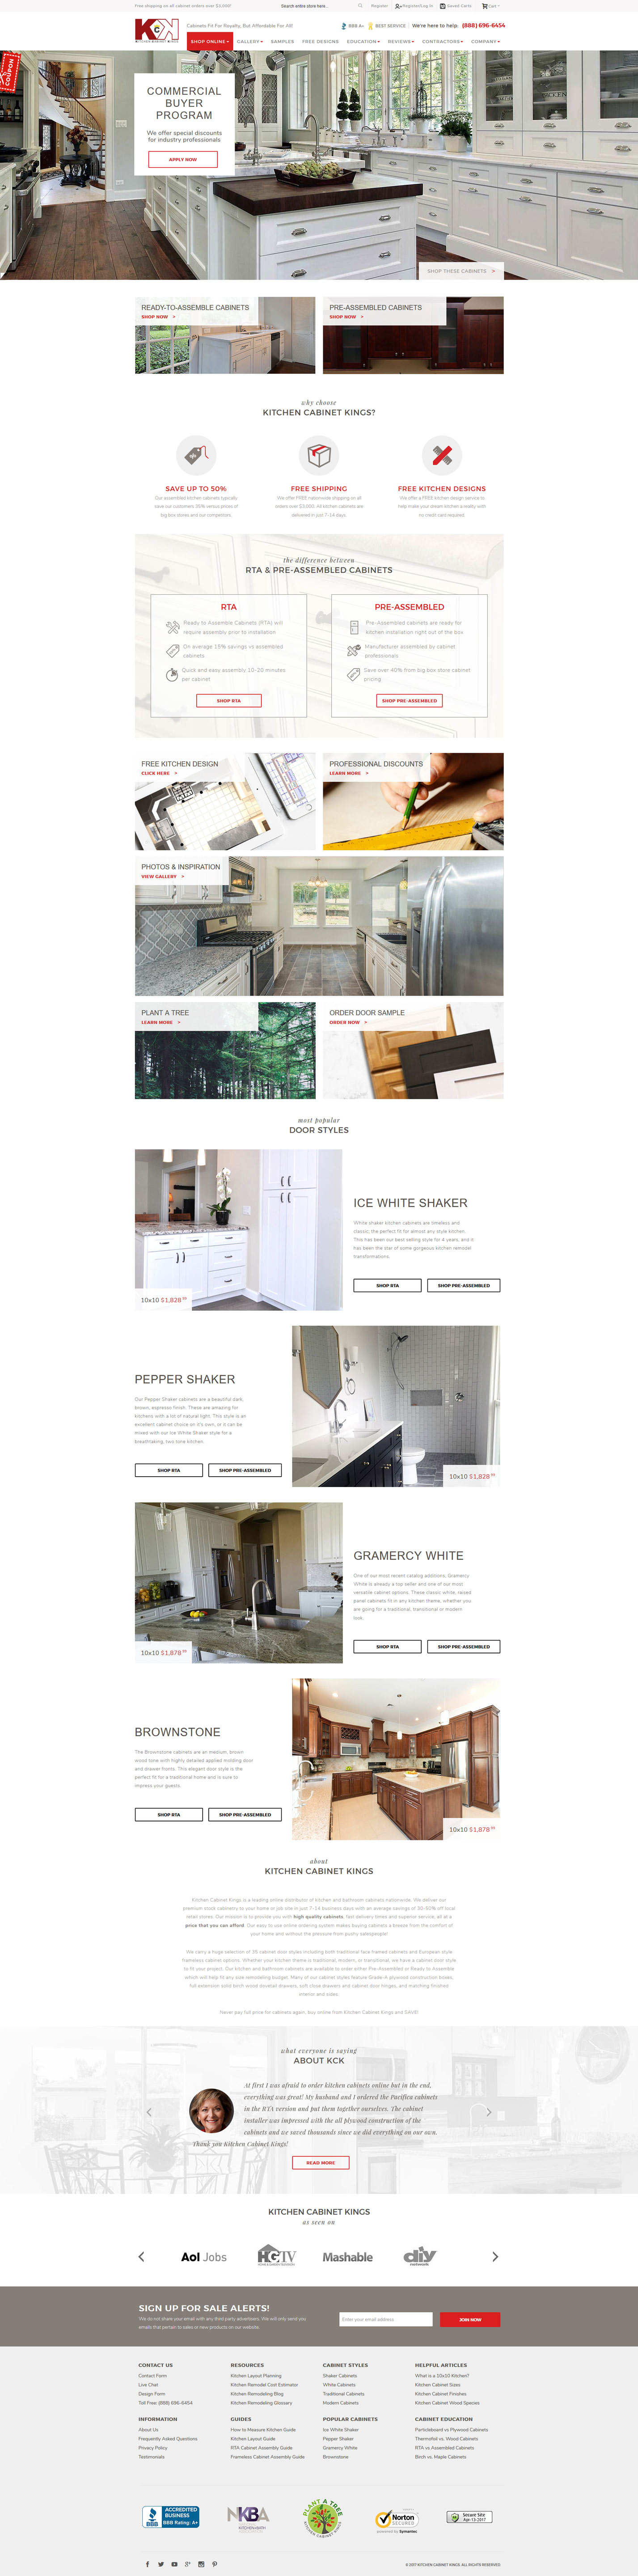 e merce Website Kitchen Cabinet Kings